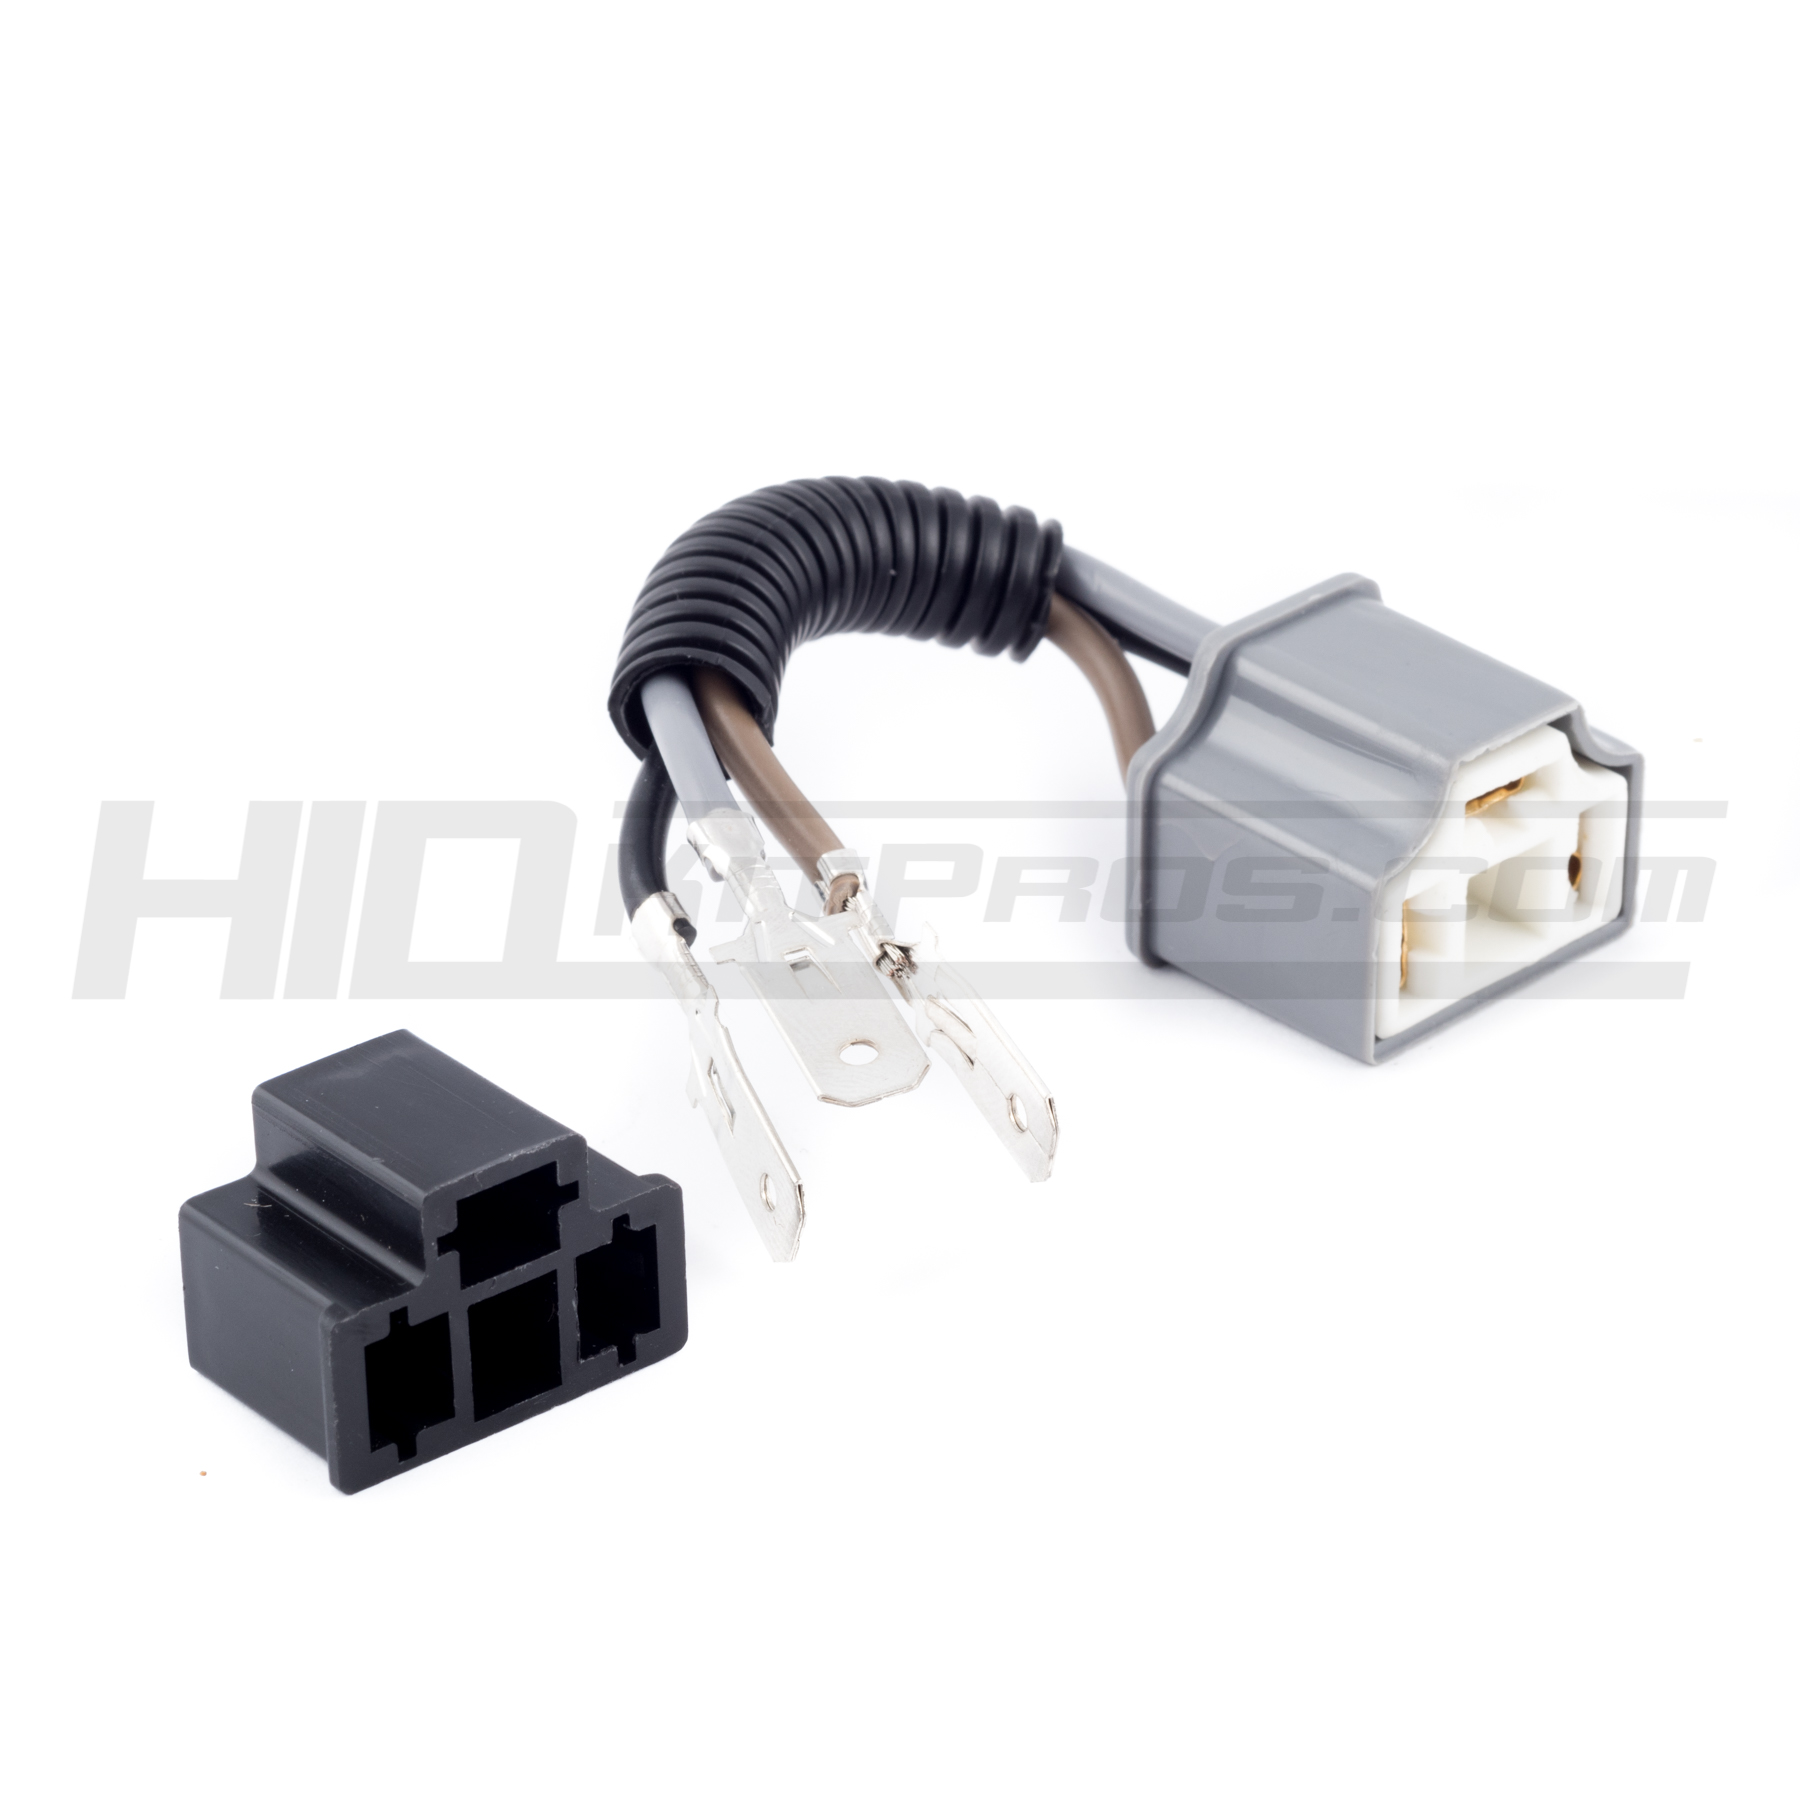 H4 9003 To Male Female Pigtail Socket Adapter Hid Kit Pros Headlight Wiring Diagram